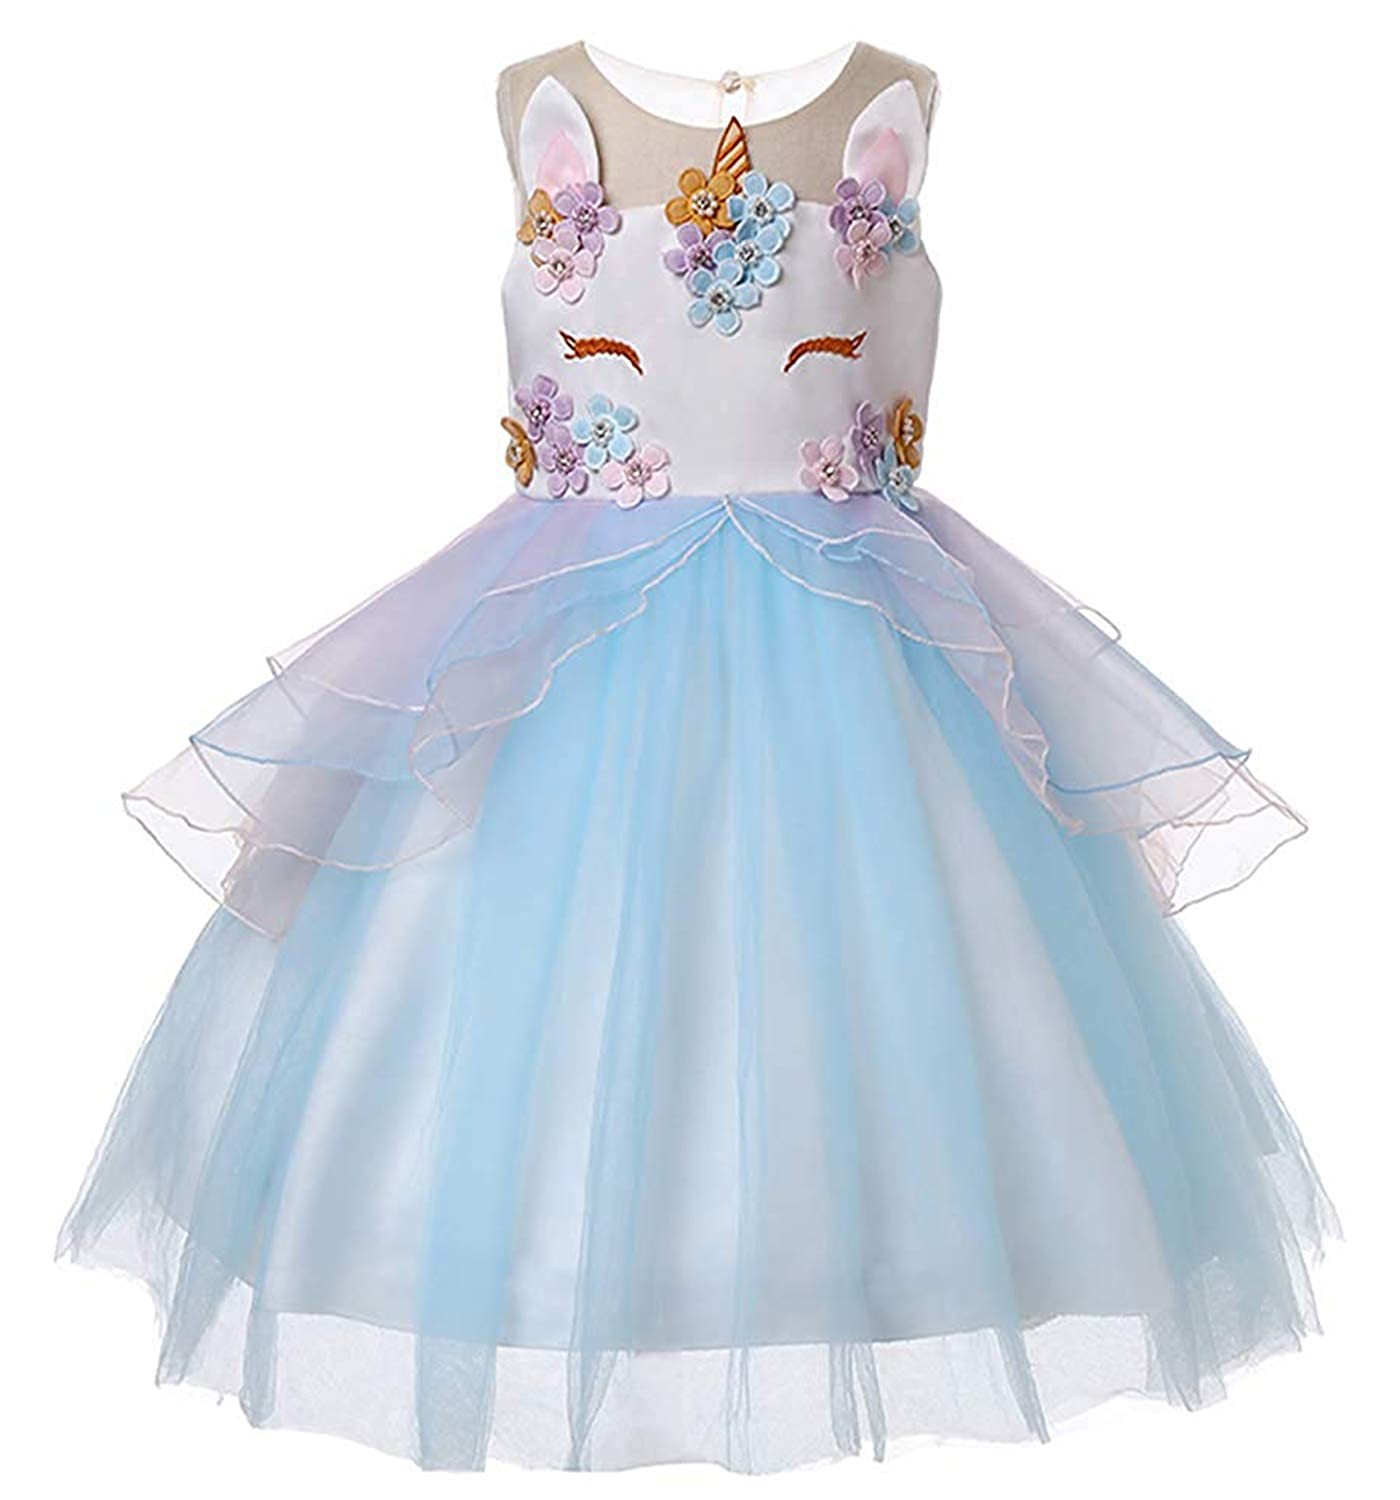 b1598f5b2 Amazon.com  TTYAOVO Flower Girls Unicorn Costume Kids Pageant ...